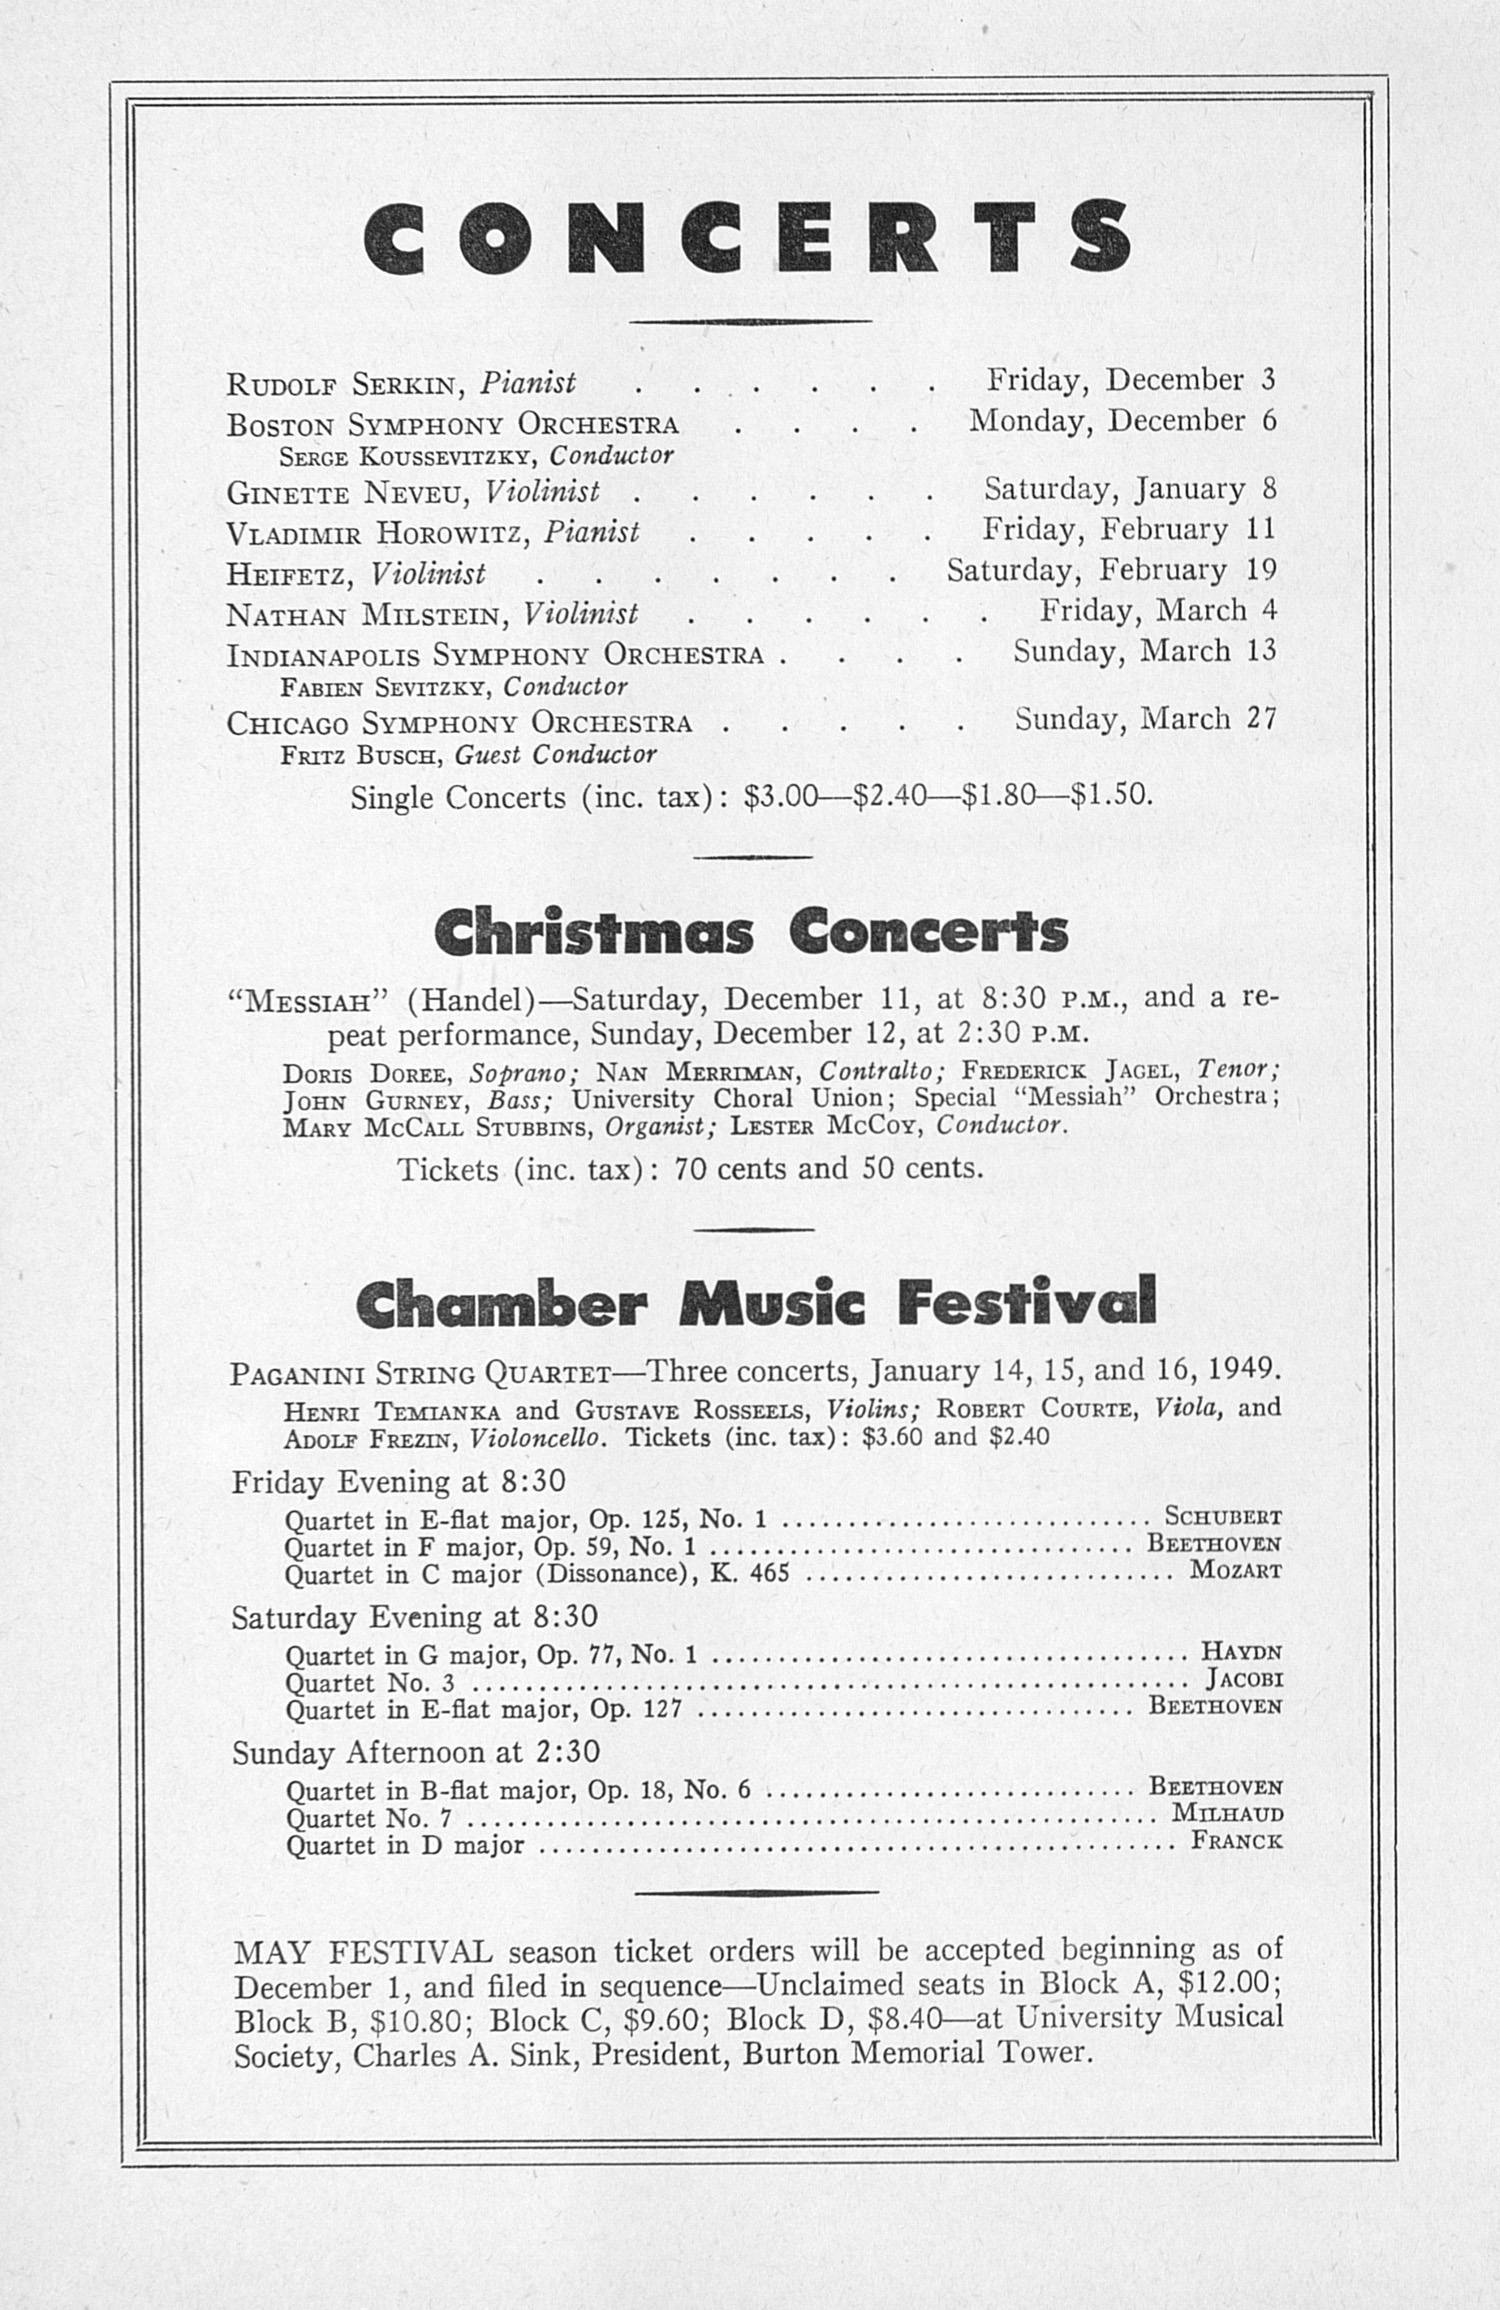 UMS Concert Program, November 27, 1948: Seventieth Annual Choral Union Concert Series -- Clifford Curzon image